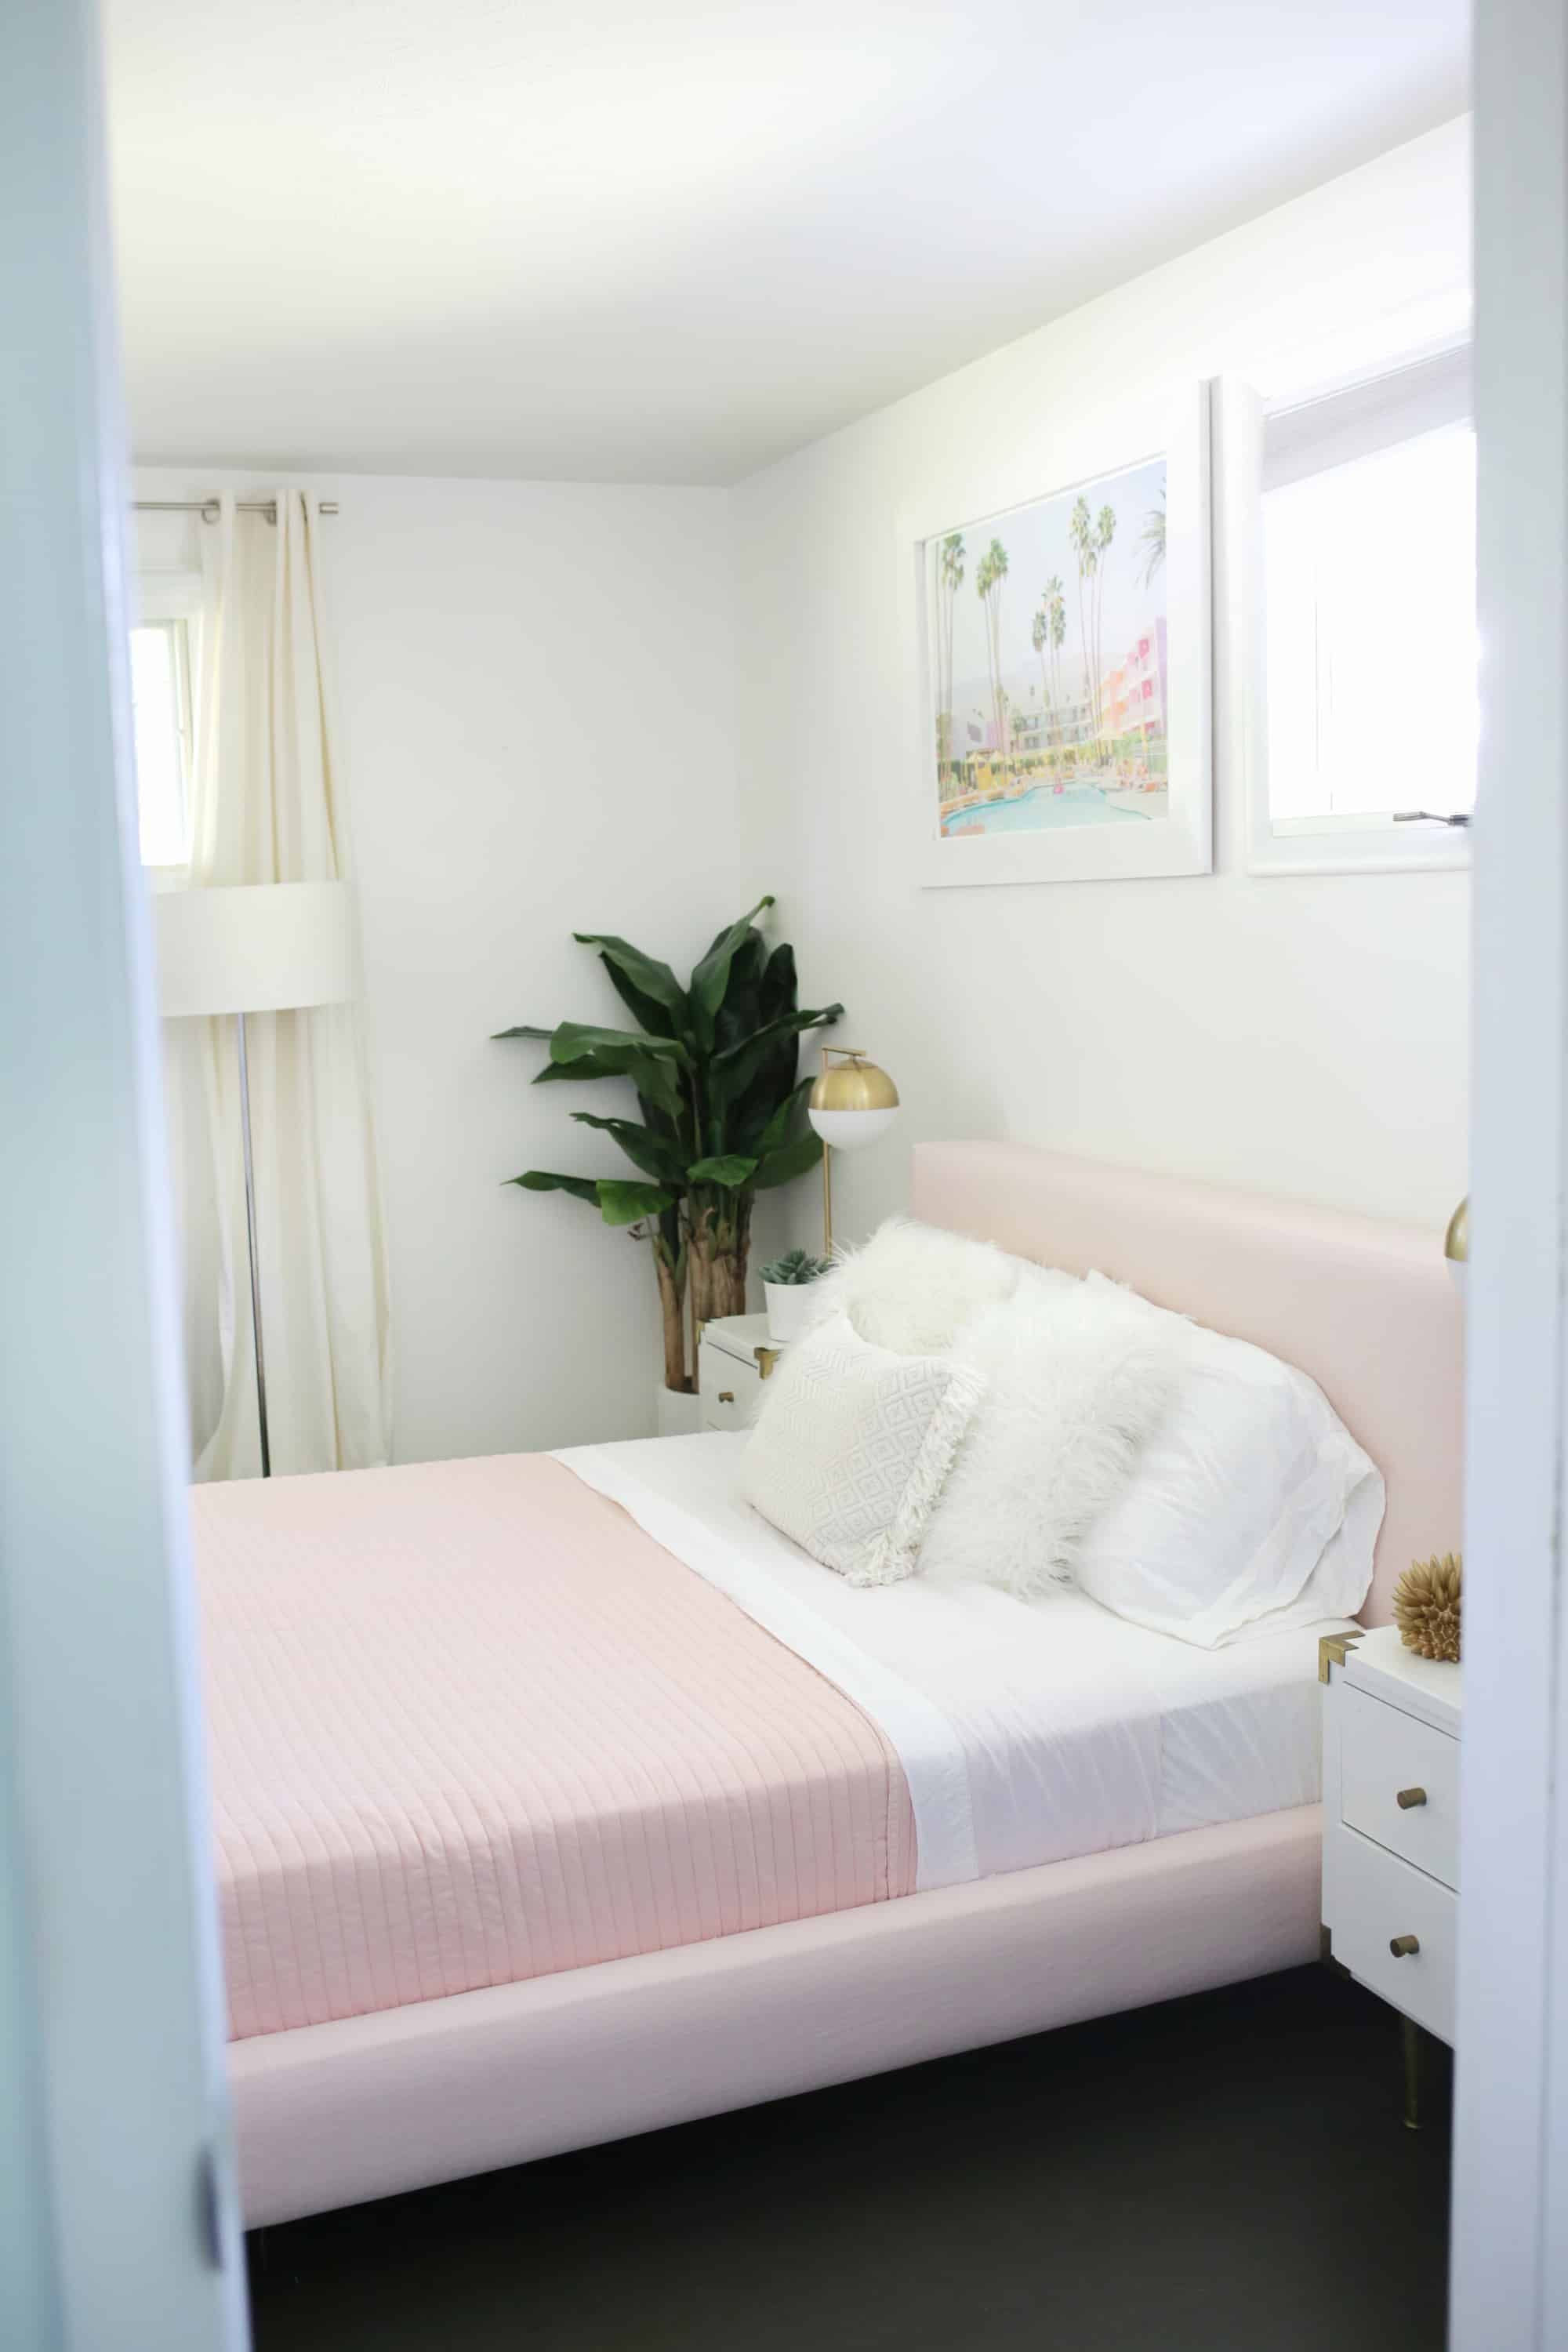 Reupholster Your Bed Frame In One Afternoon With A No Sew Option